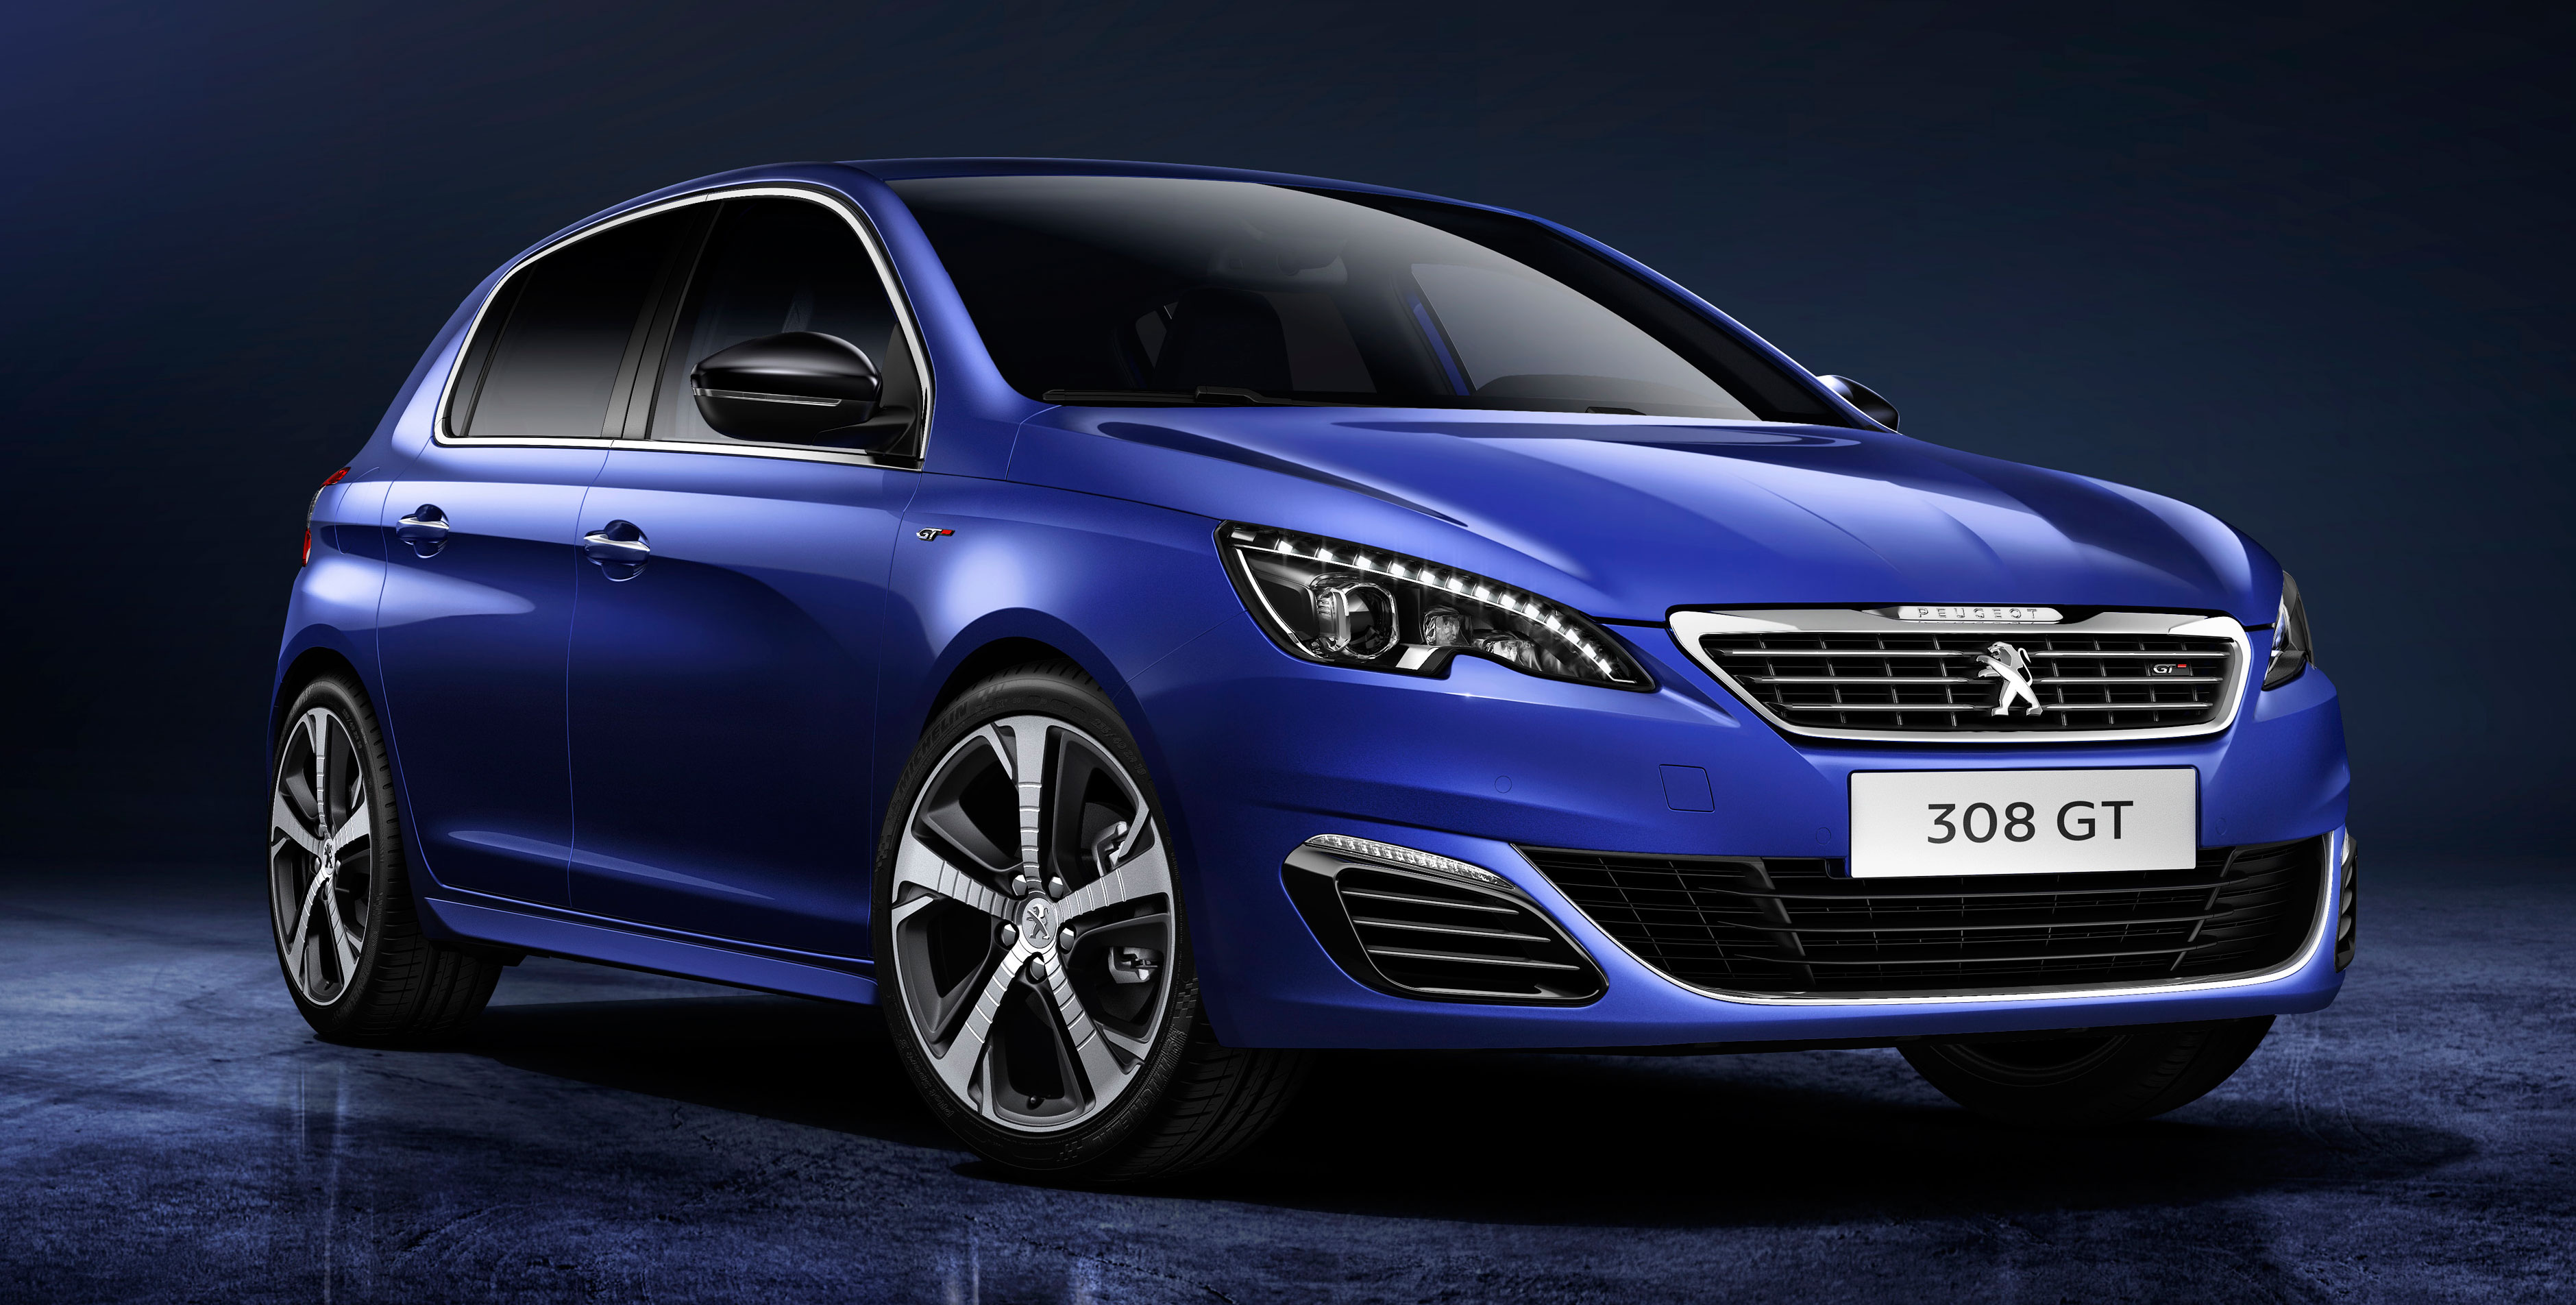 peugeot 308 gets new gt line and sportium trims. Black Bedroom Furniture Sets. Home Design Ideas